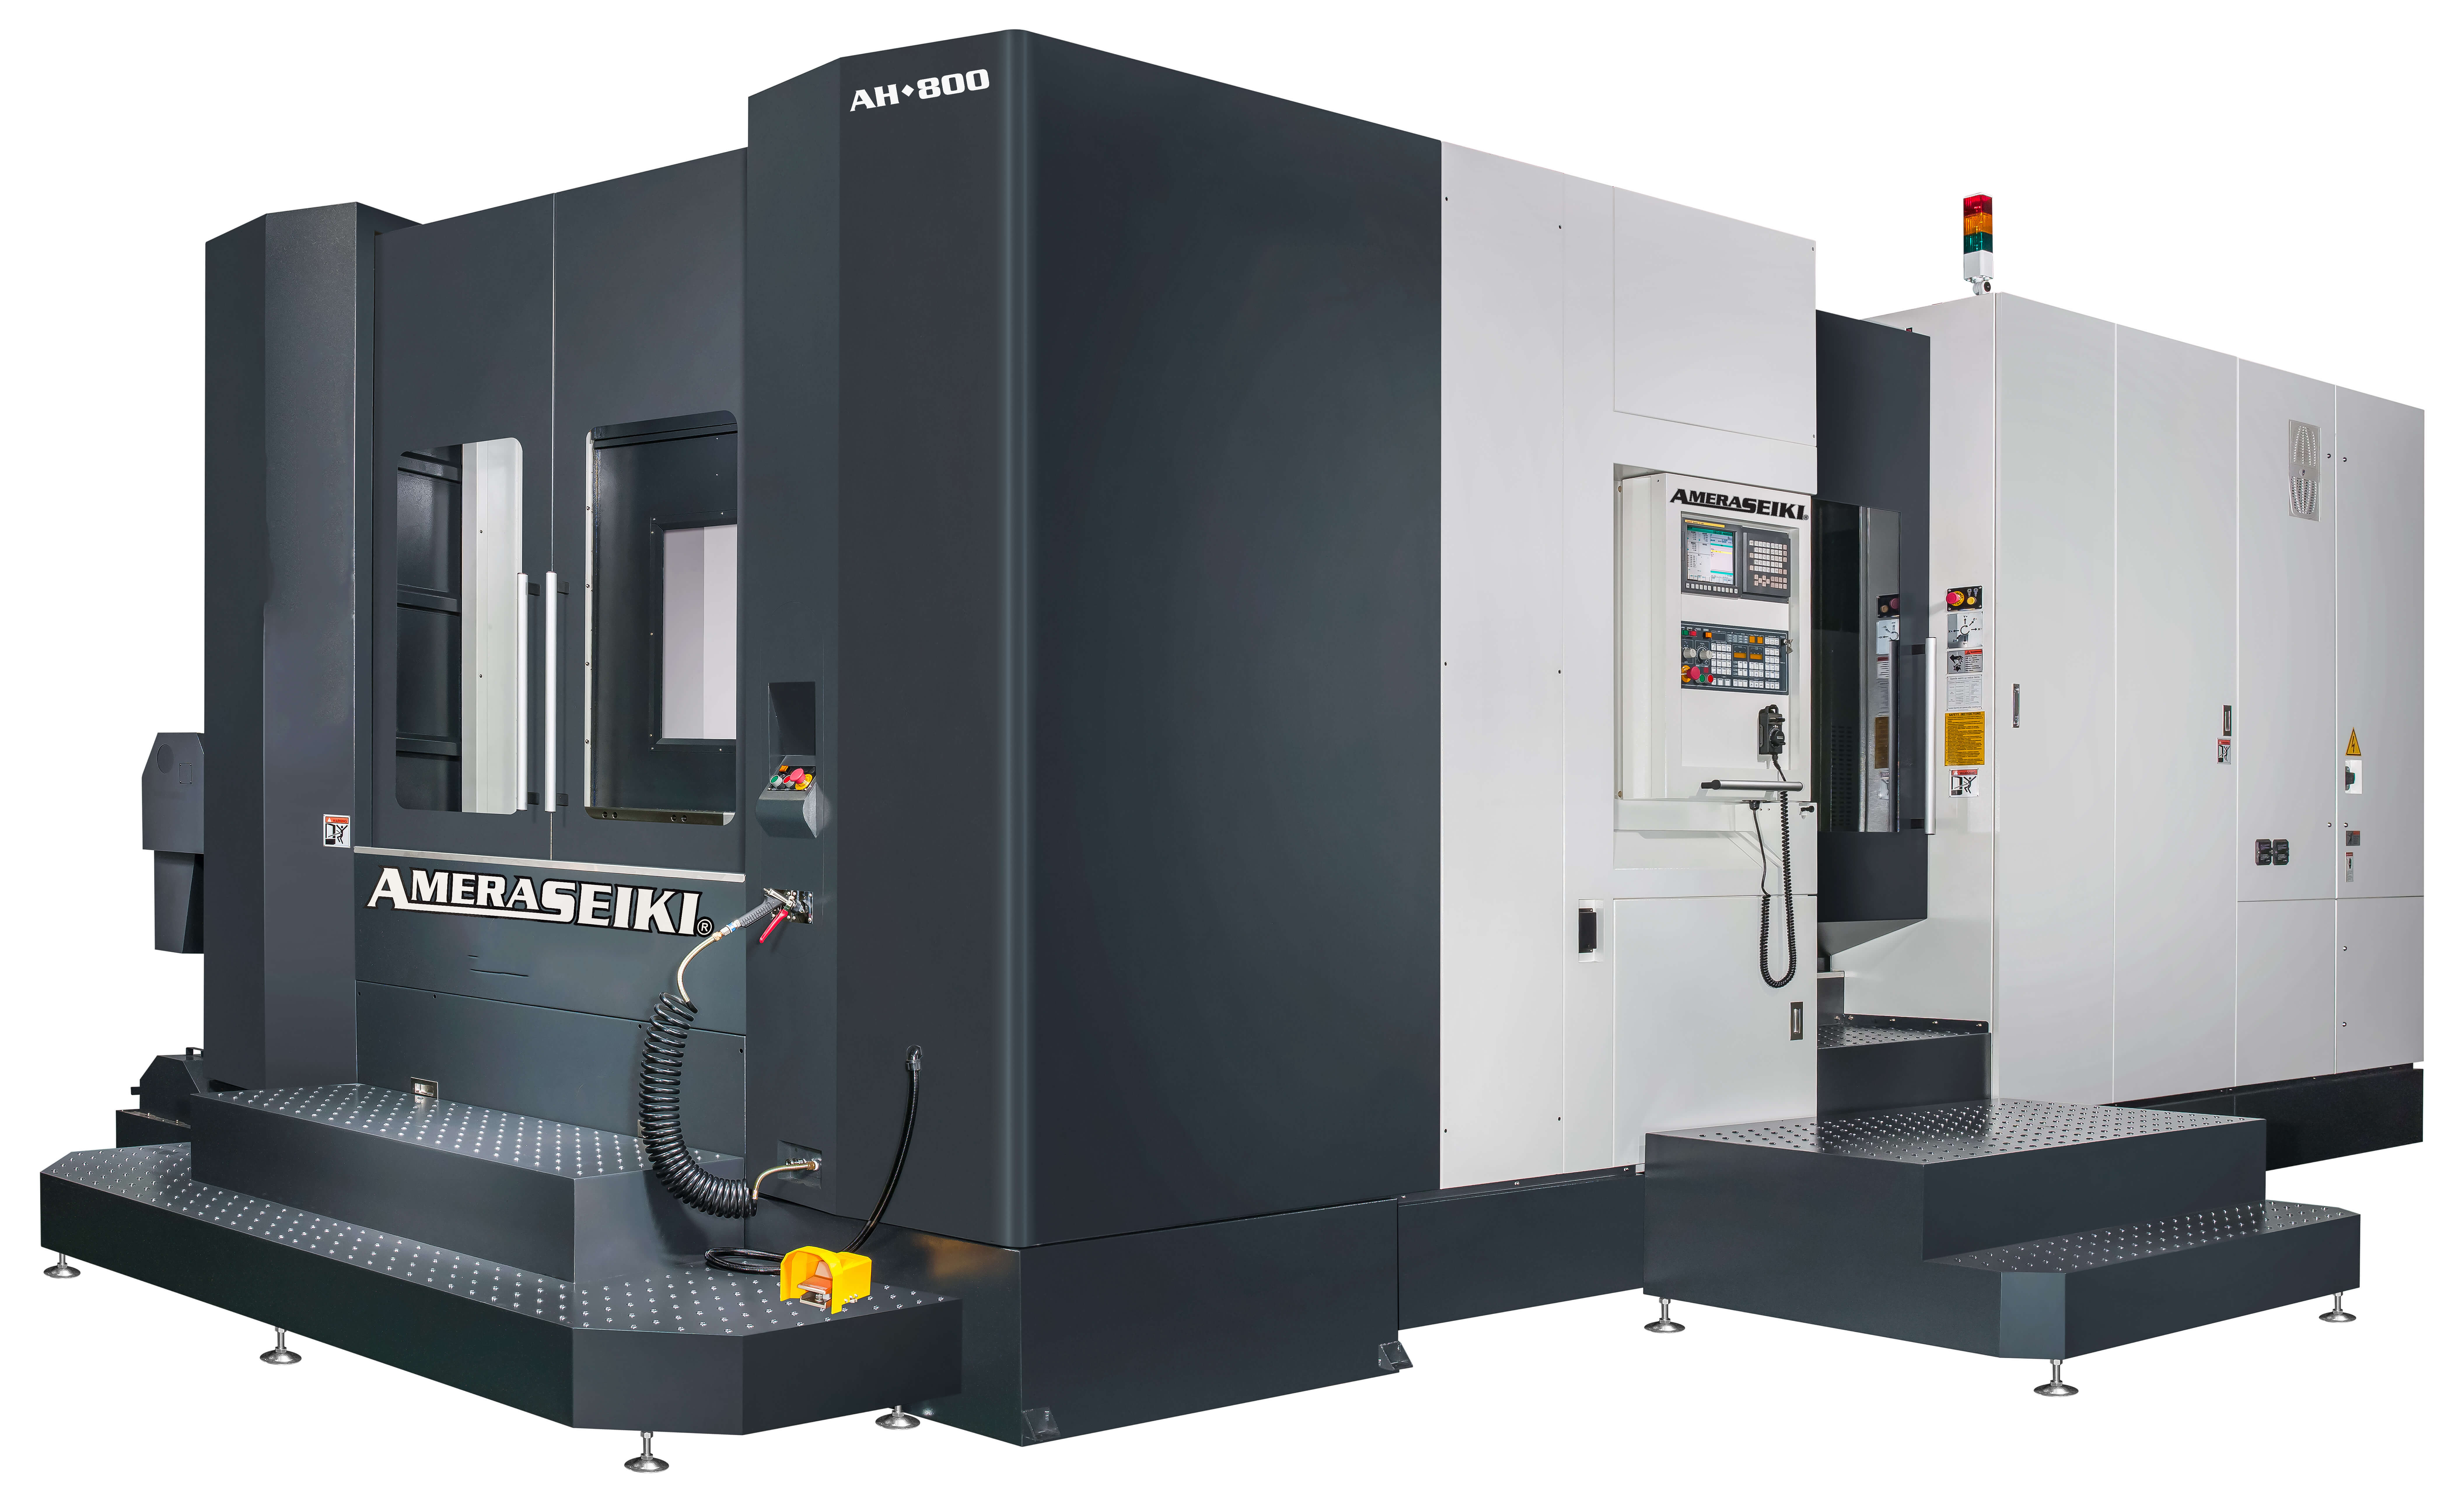 Amera-Seiki's HMC Series Horizonatal Machining Center